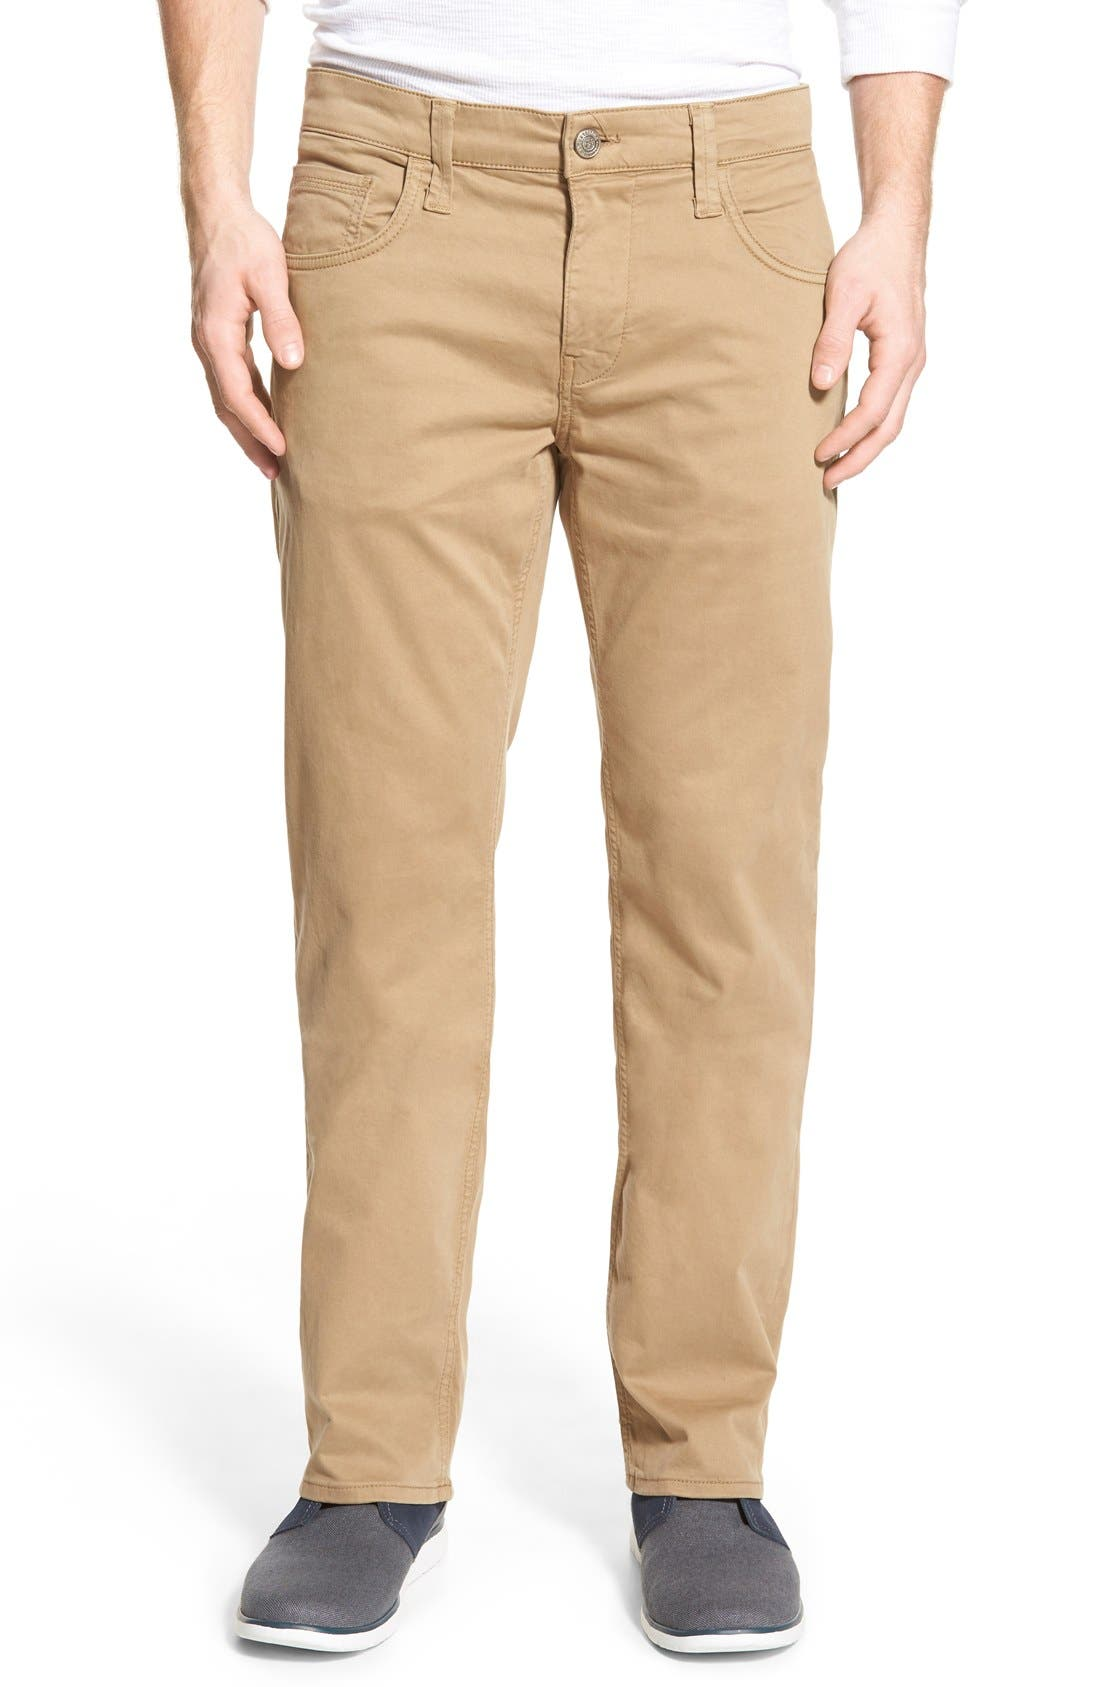 Mavi Jeans 'Zach' Straight Leg Twill Pants